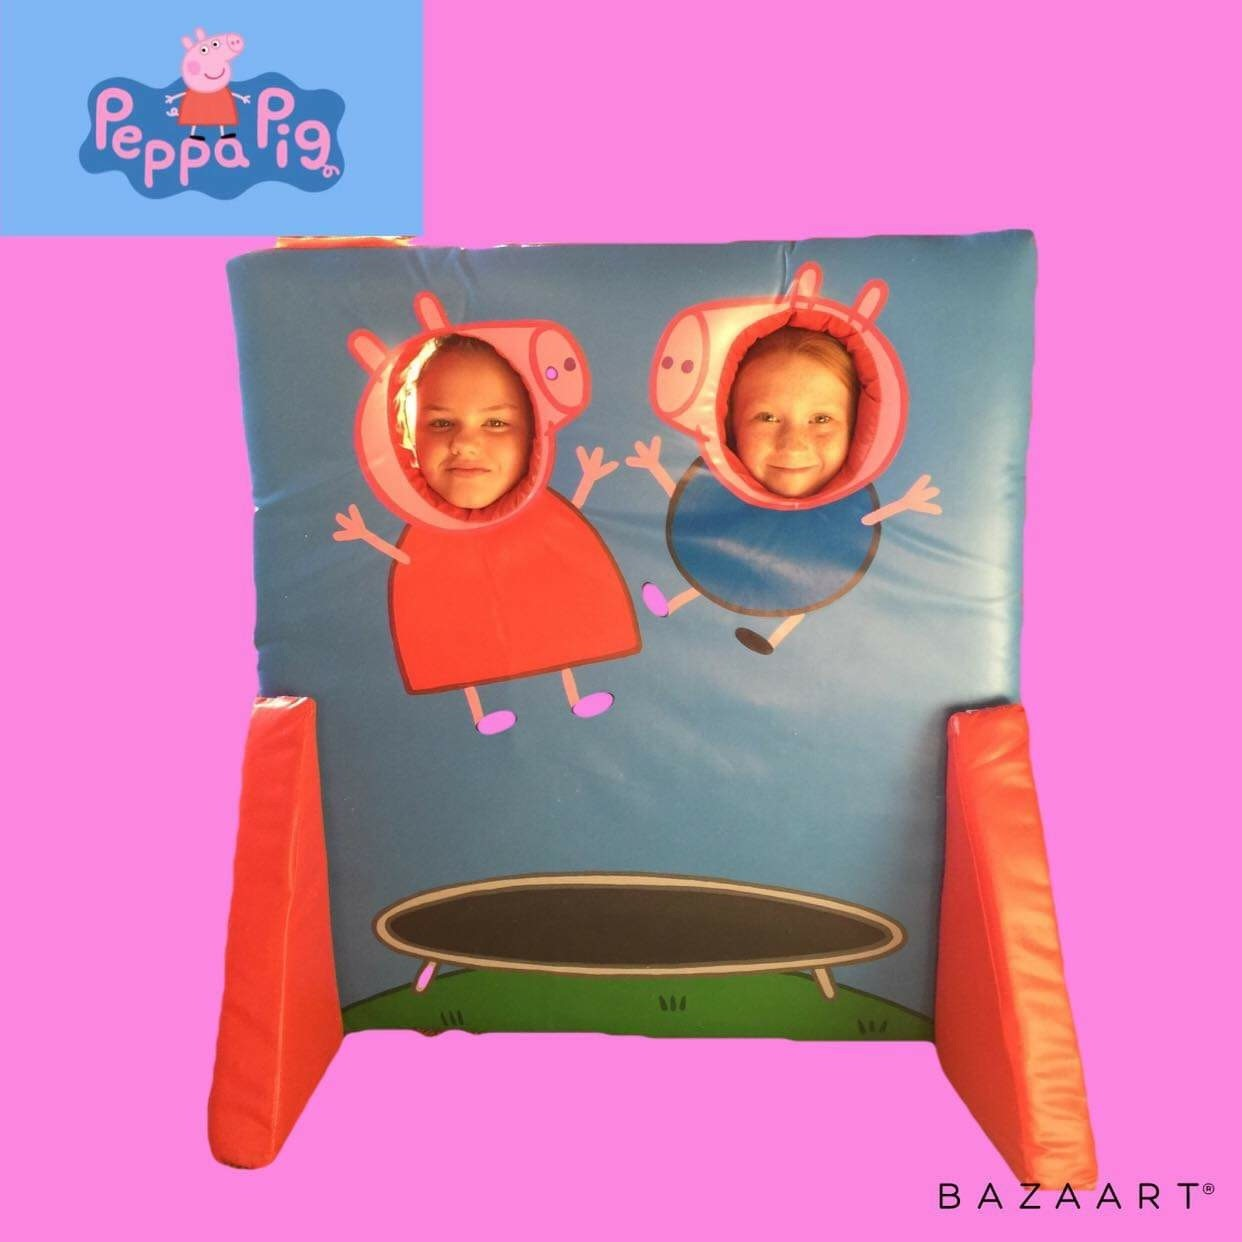 Peppa Pig Photo board hire kent